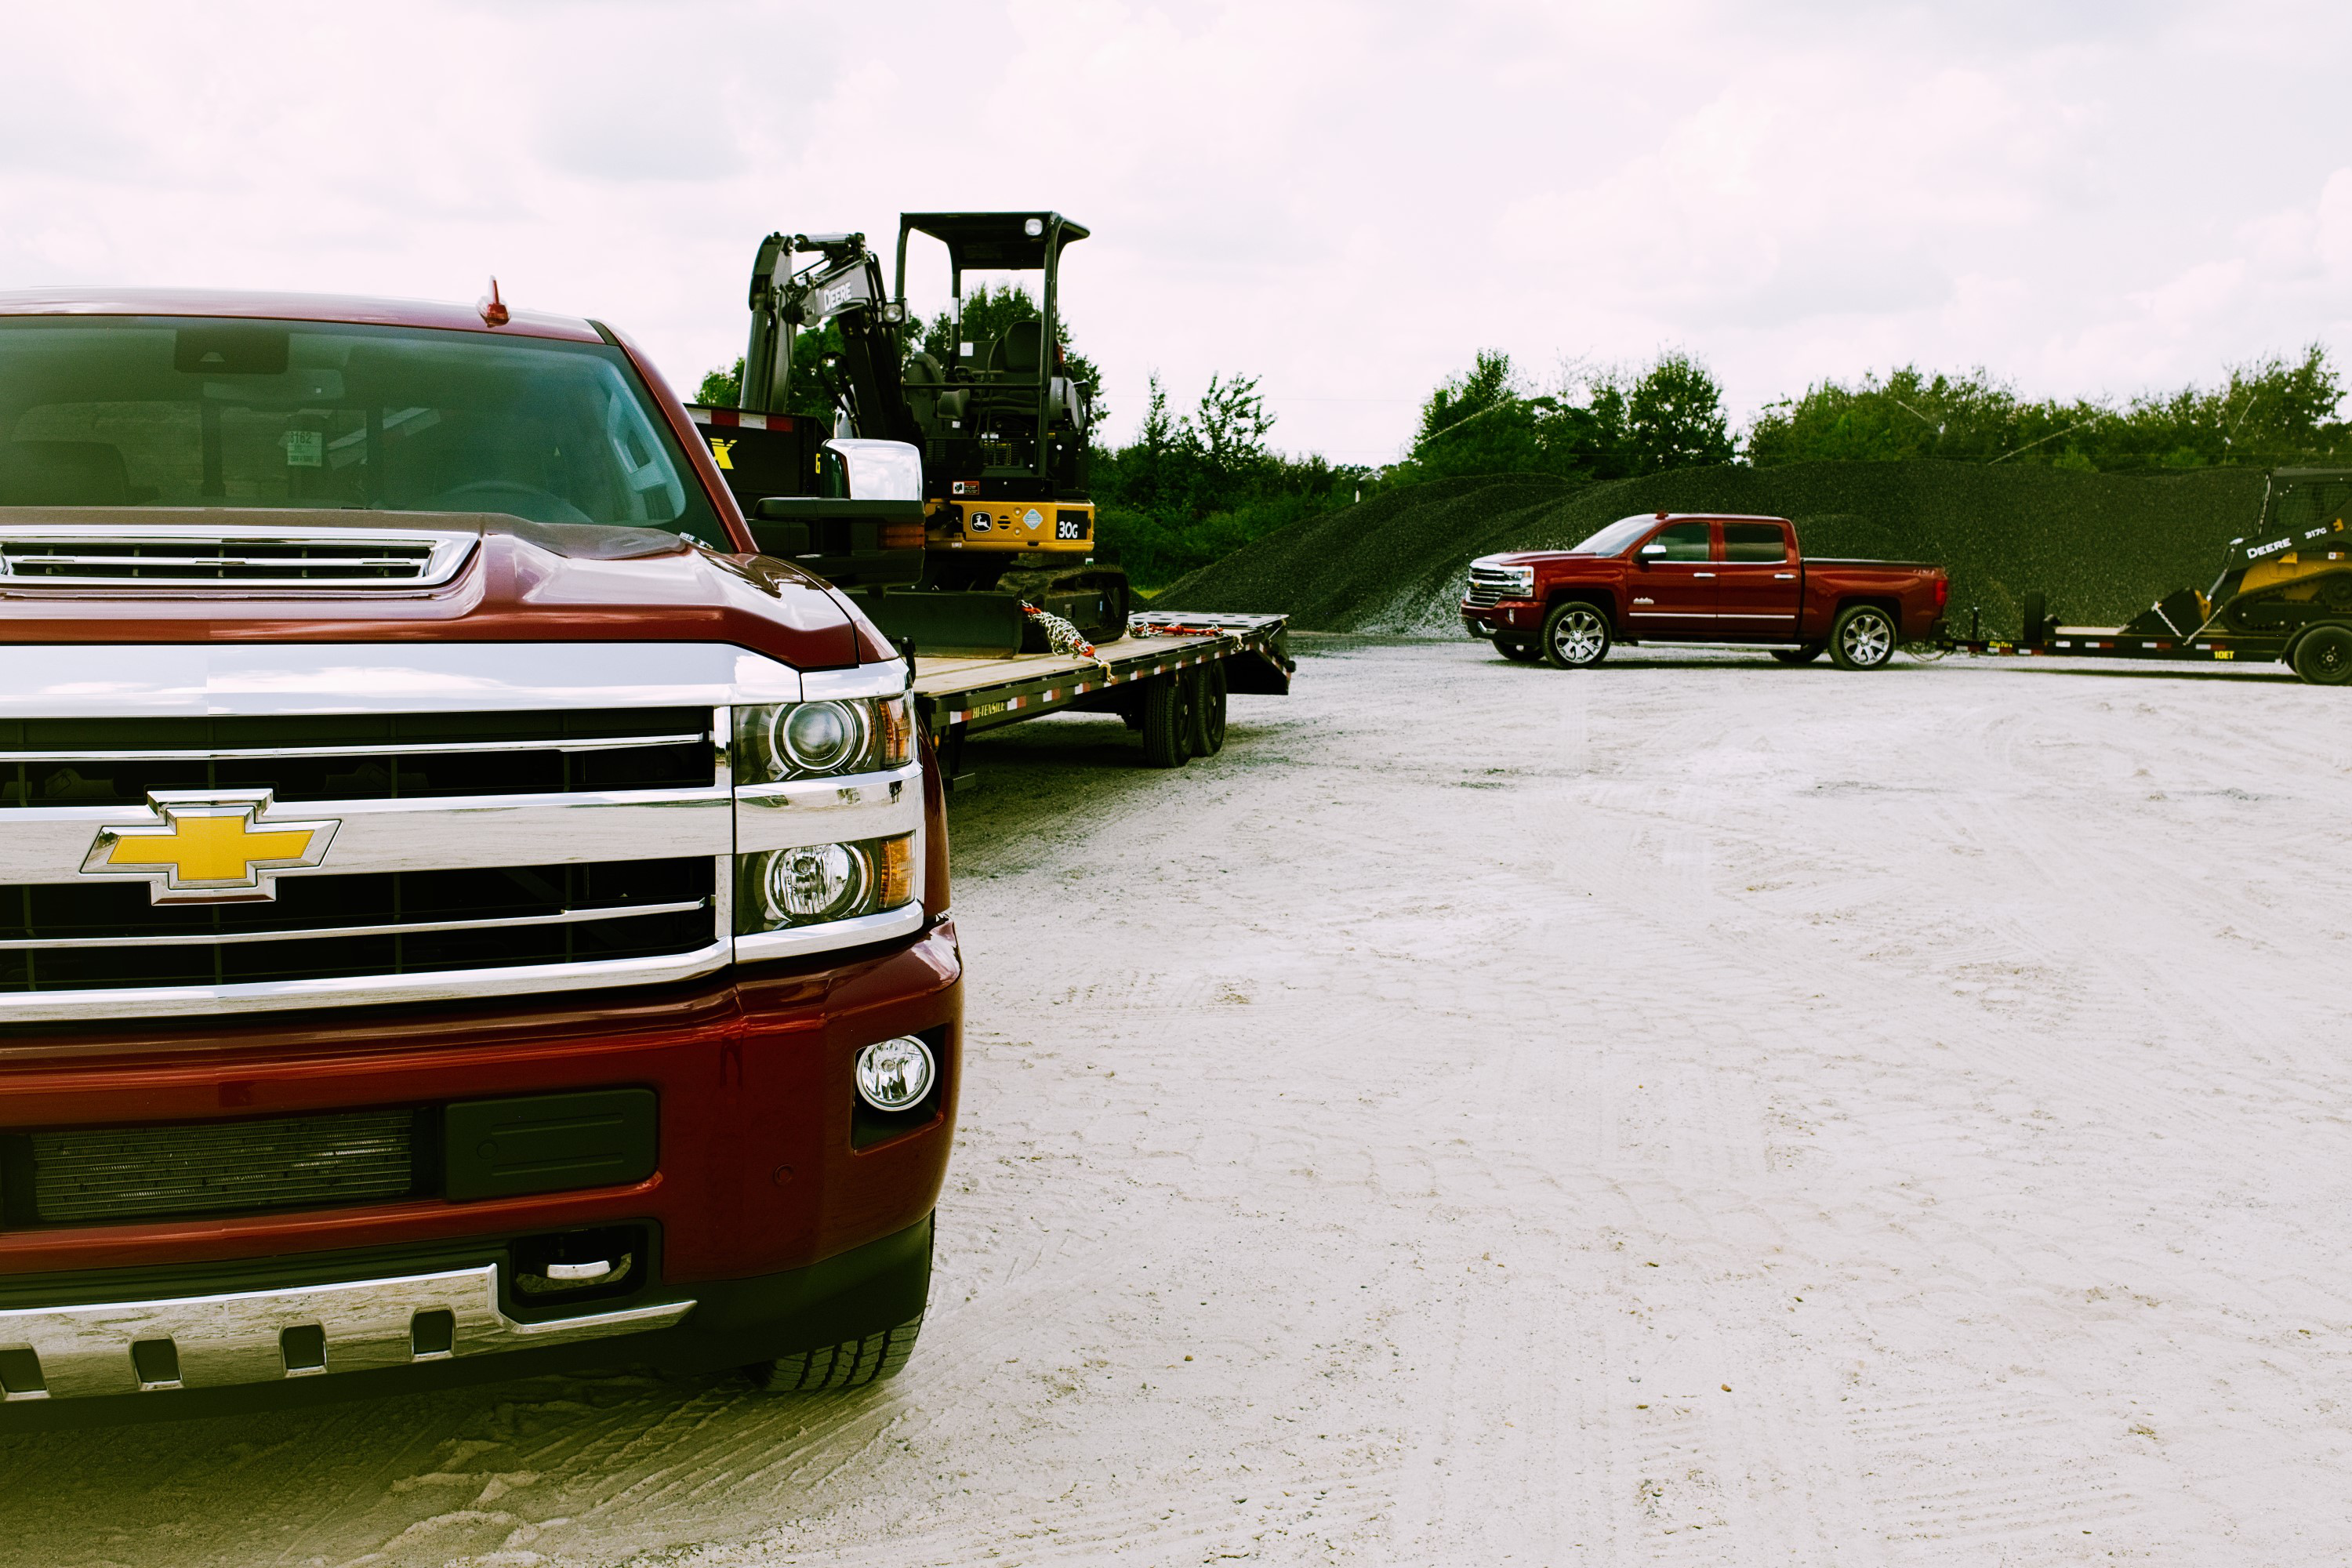 chevy silverados hailing trailers with john deere equipment